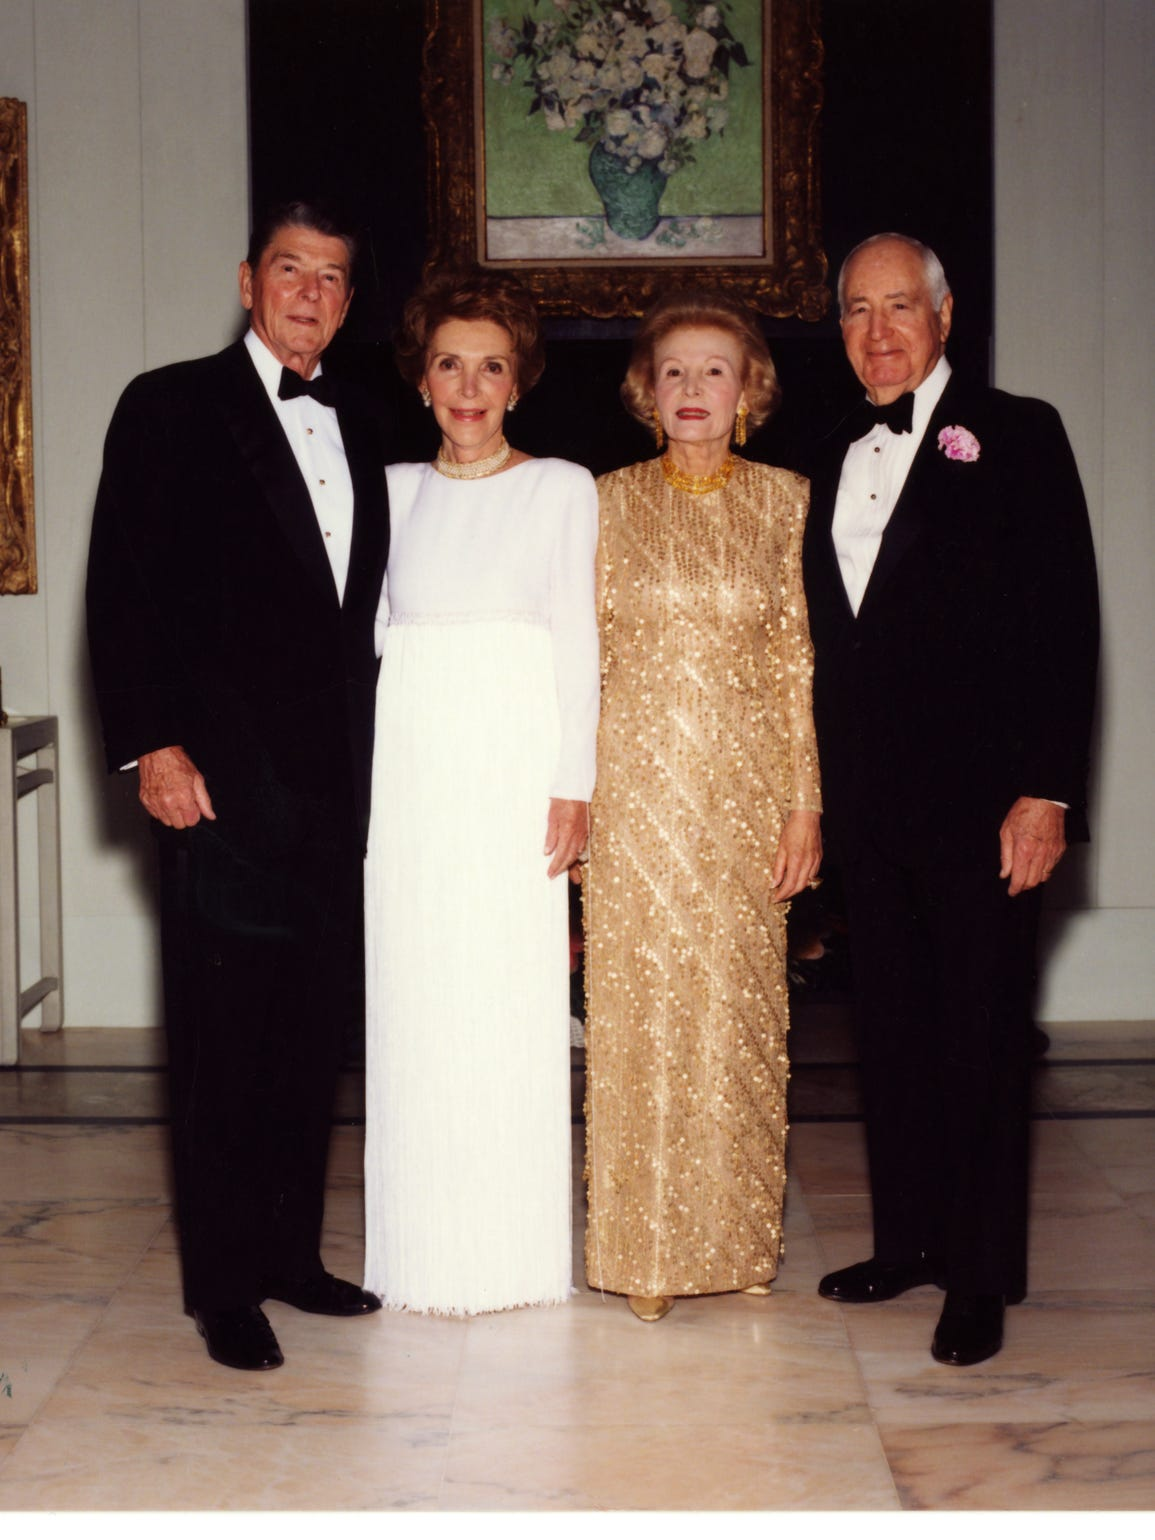 President Ronald Reagan and First Lady Nancy Reagan